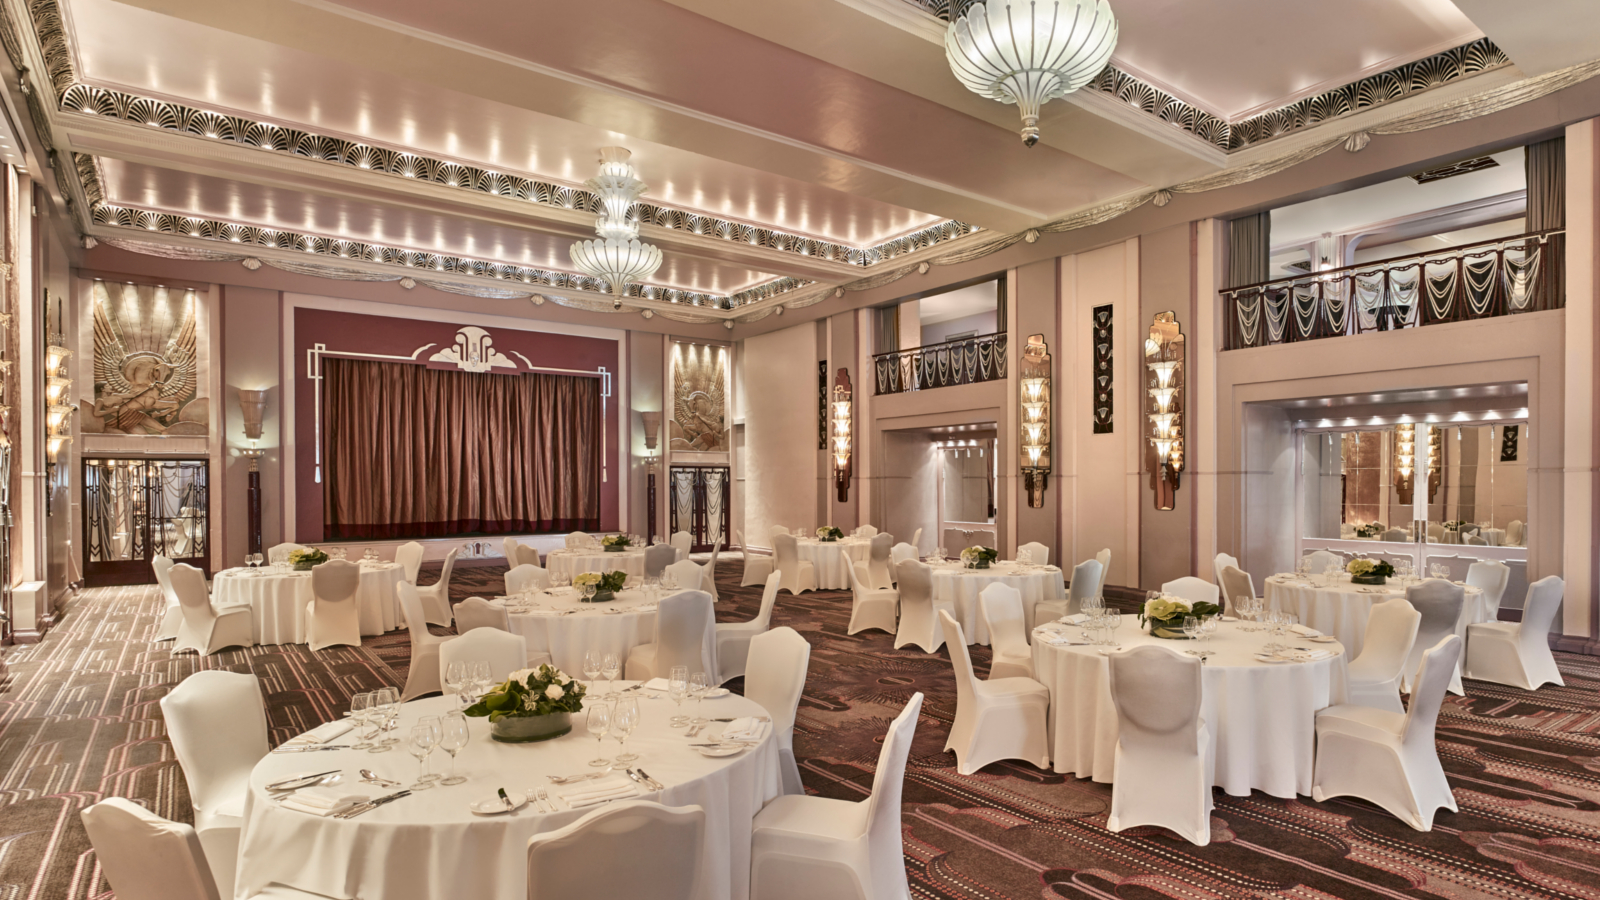 The Sheraton Grand London Wedding Venue